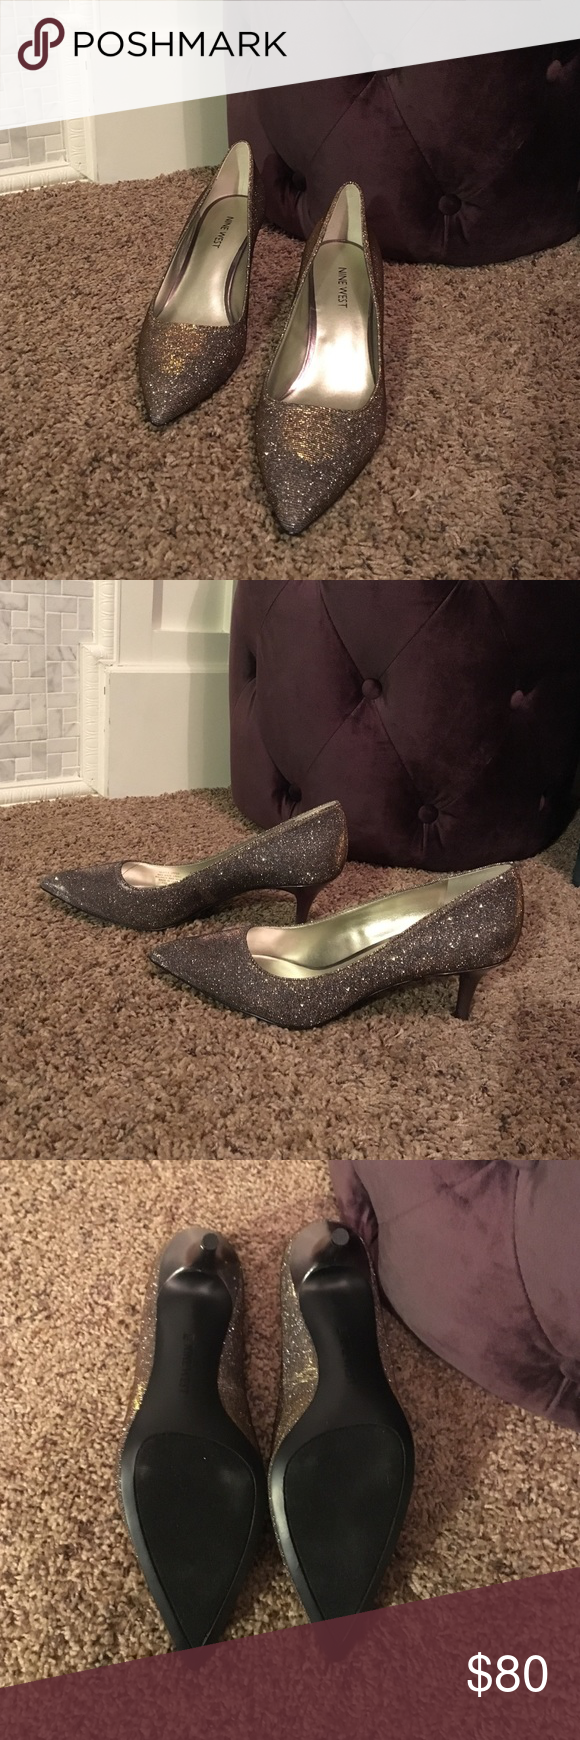 Nine West heels Sparkling silver, with gold tones in certain light. Smaller heel. New, not worn. Out of box. Nine West Shoes Heels